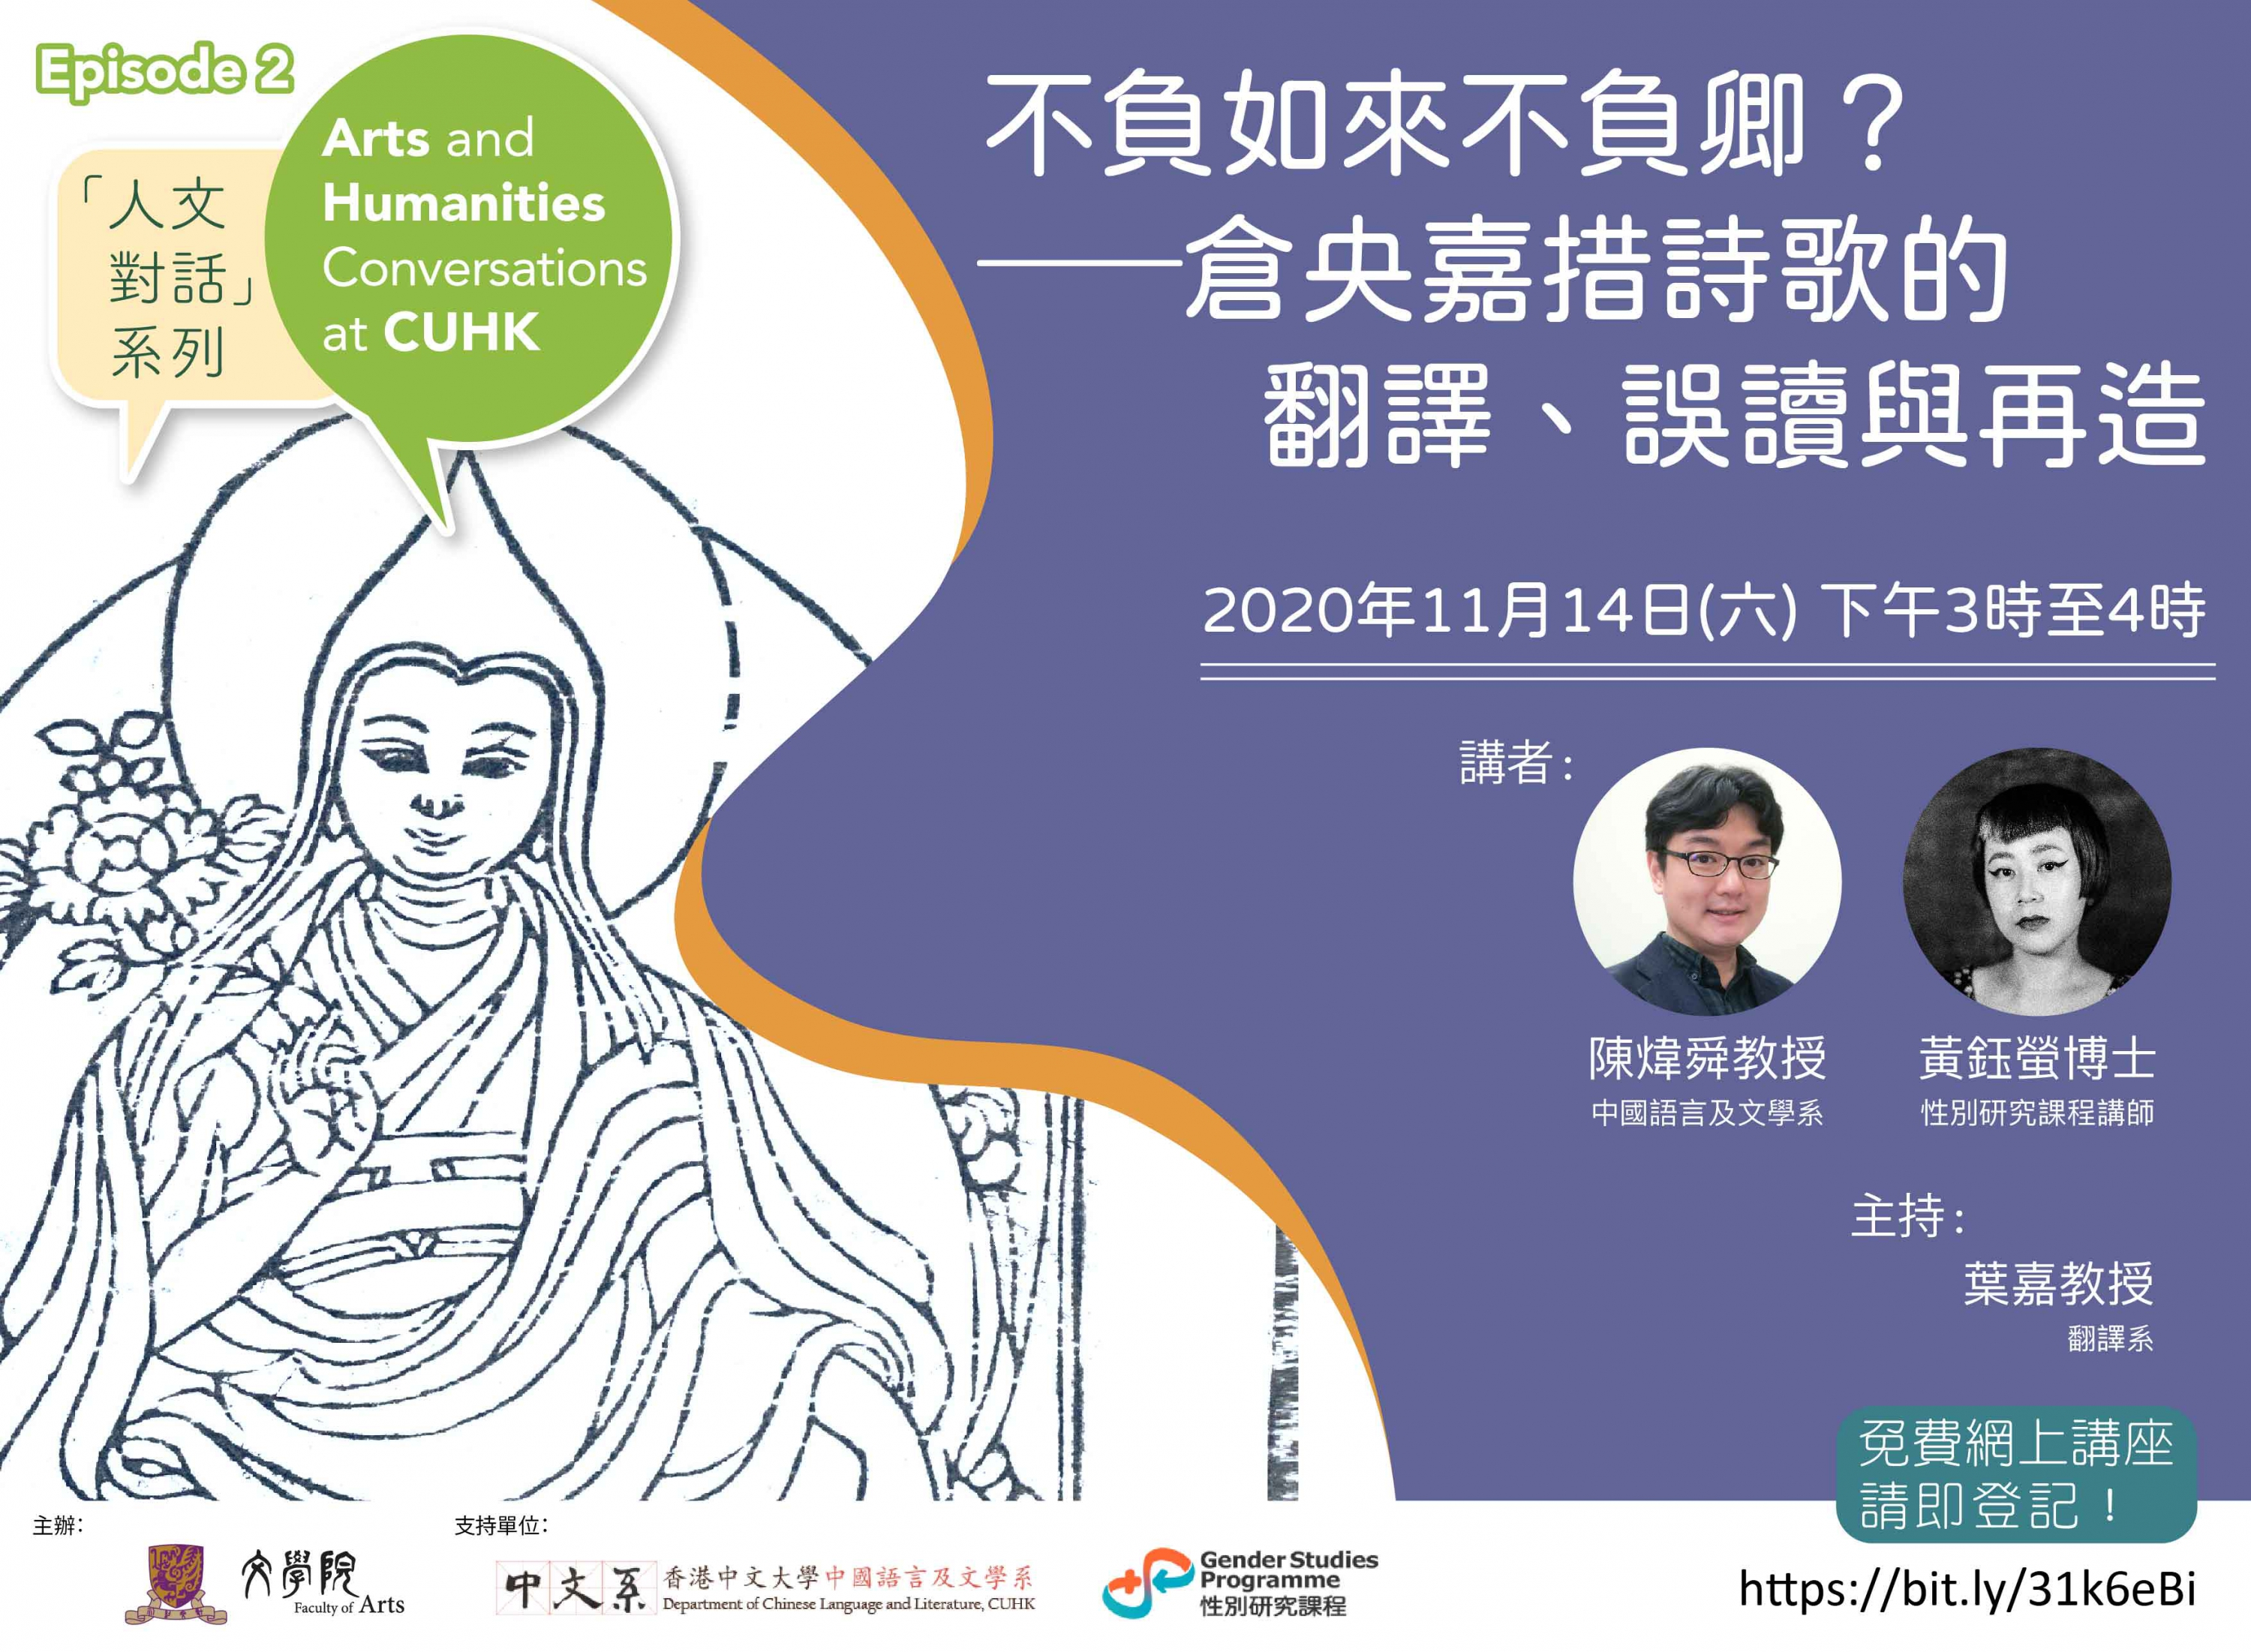 """The second episode of the """"Arts and Humanities Conversations at CUHK"""" Series - Tsangyang Gyatso's Poetry: Readings and Translations."""